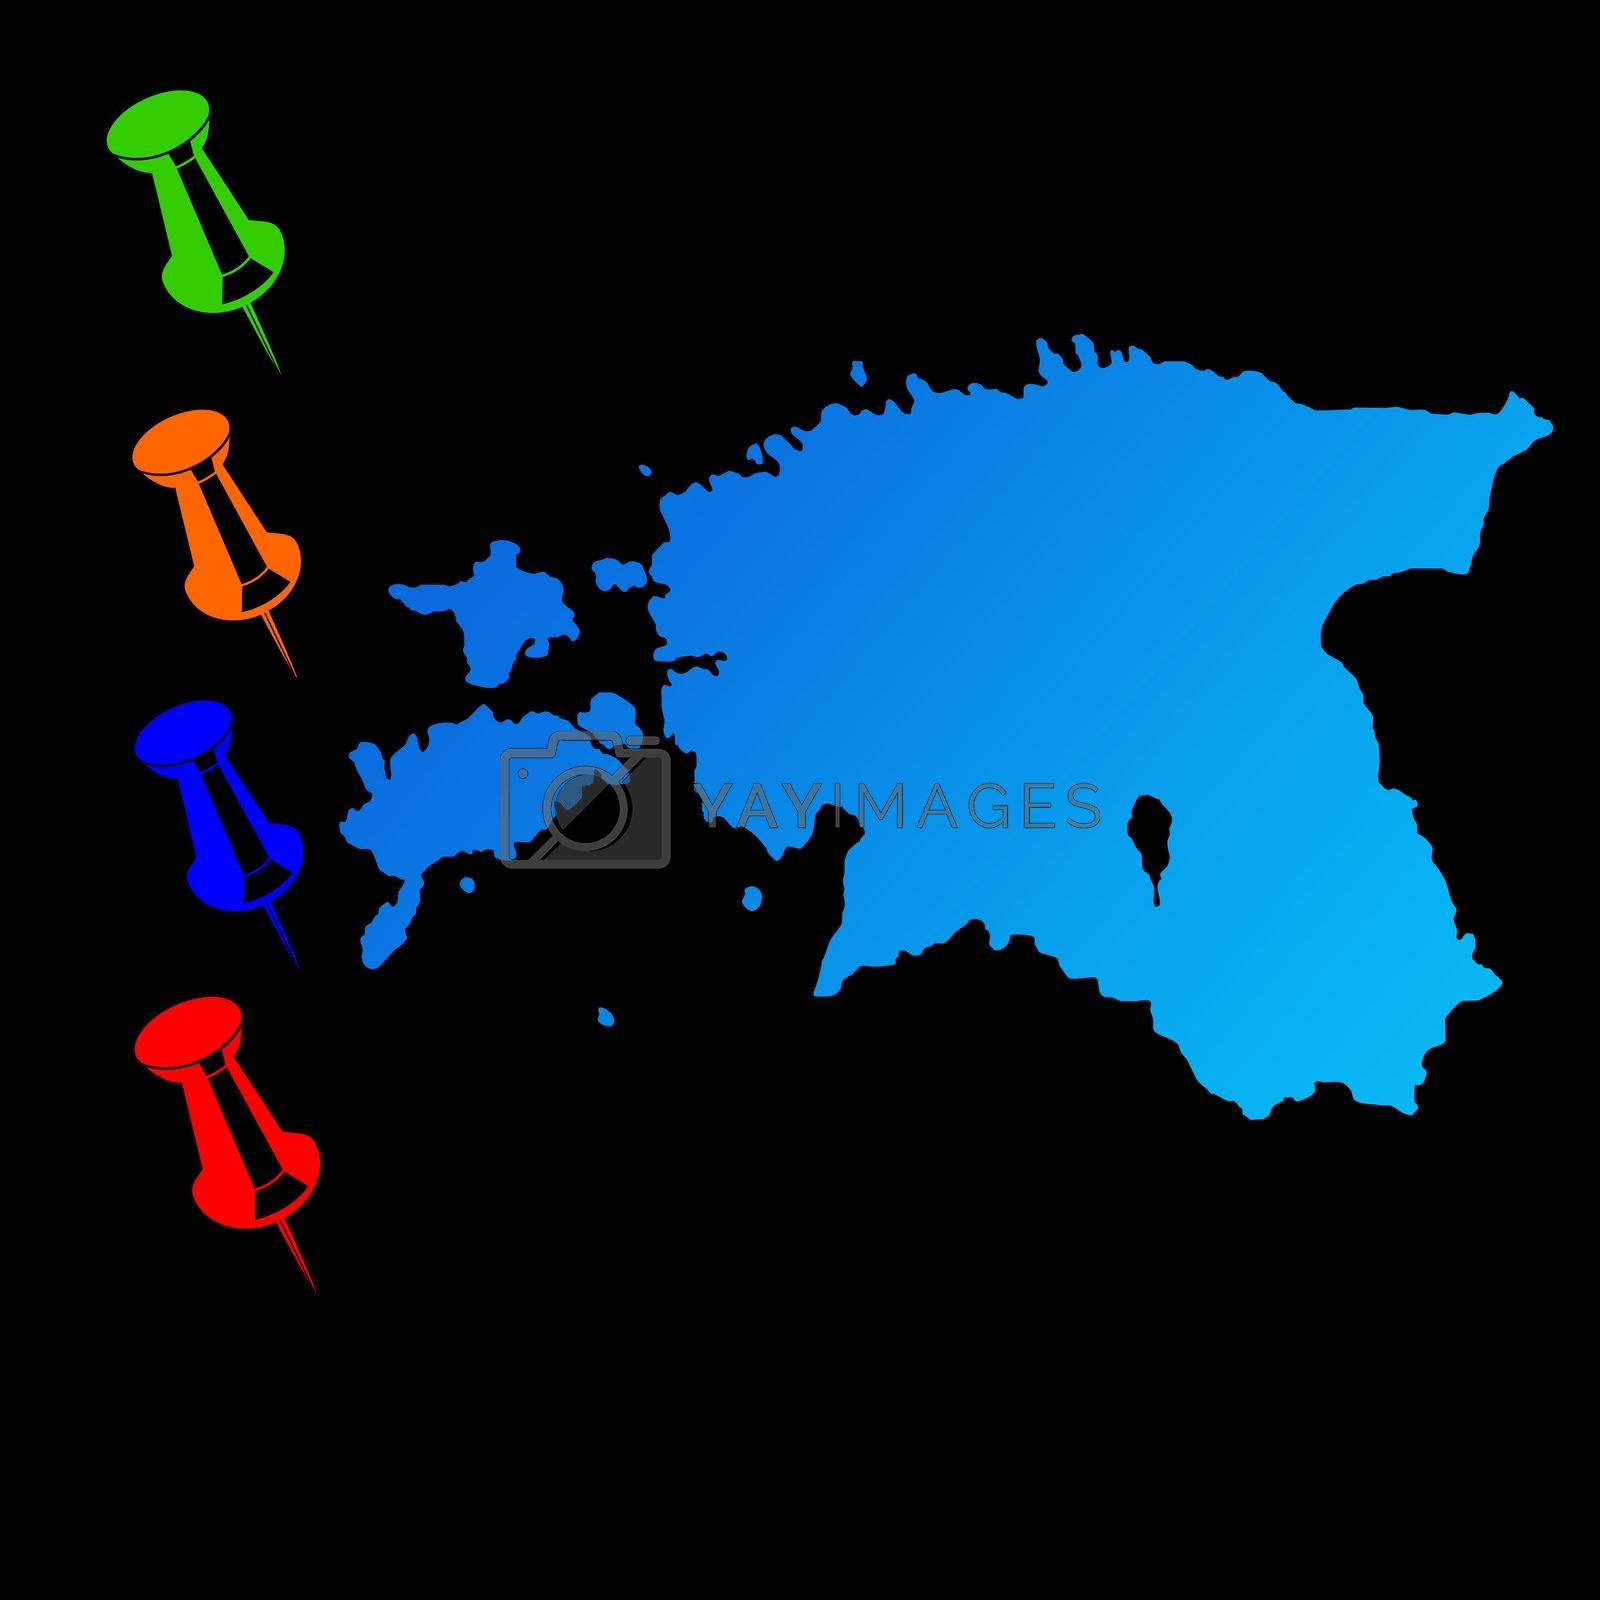 Estonia travel map with push pins on black background.